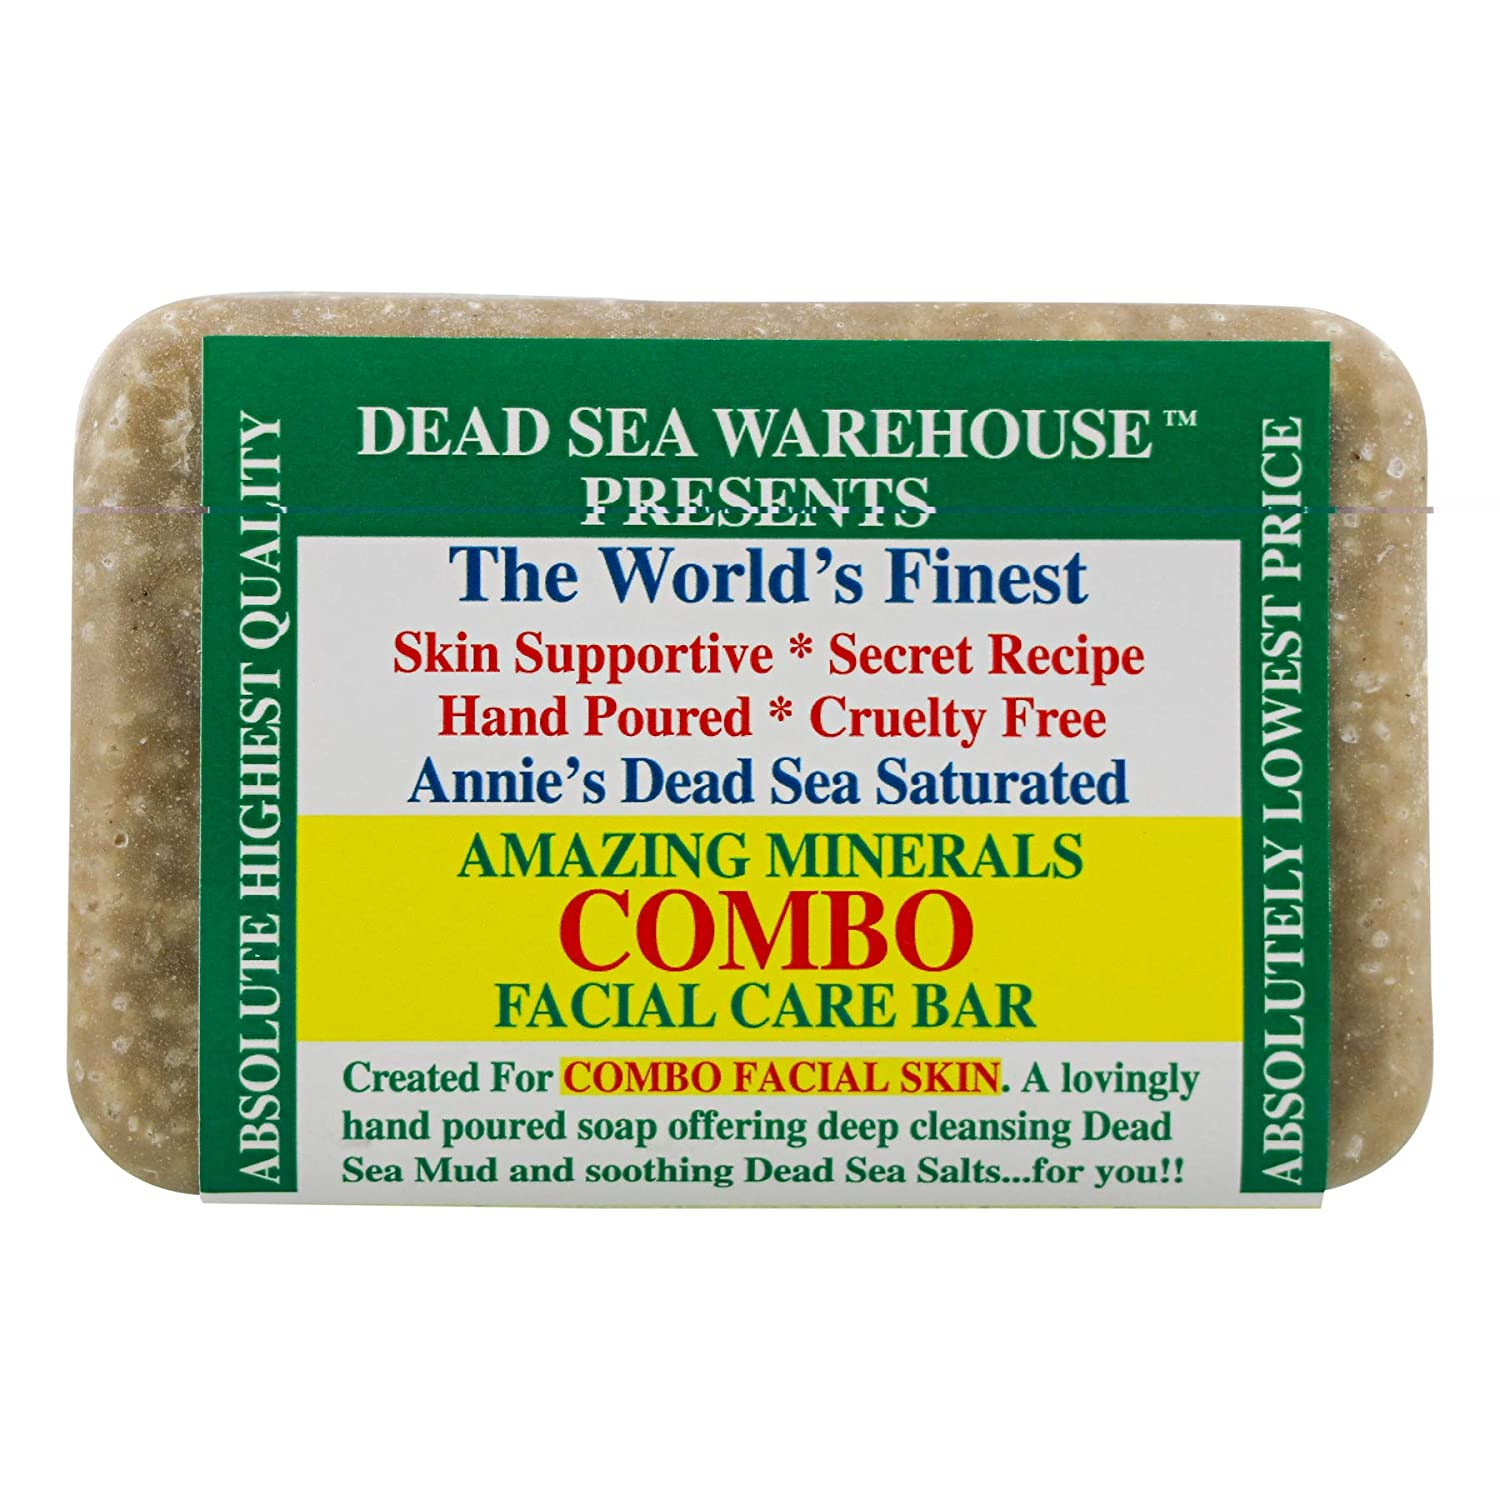 Dead Sea Warehouse - Amazing Minerals Combination Facial Skin Soap Bar, Hand Crafted with Deep Cleansing Dead Sea Mud and Soothing Dead Sea Salts (5.2 Ounces) : Beauty